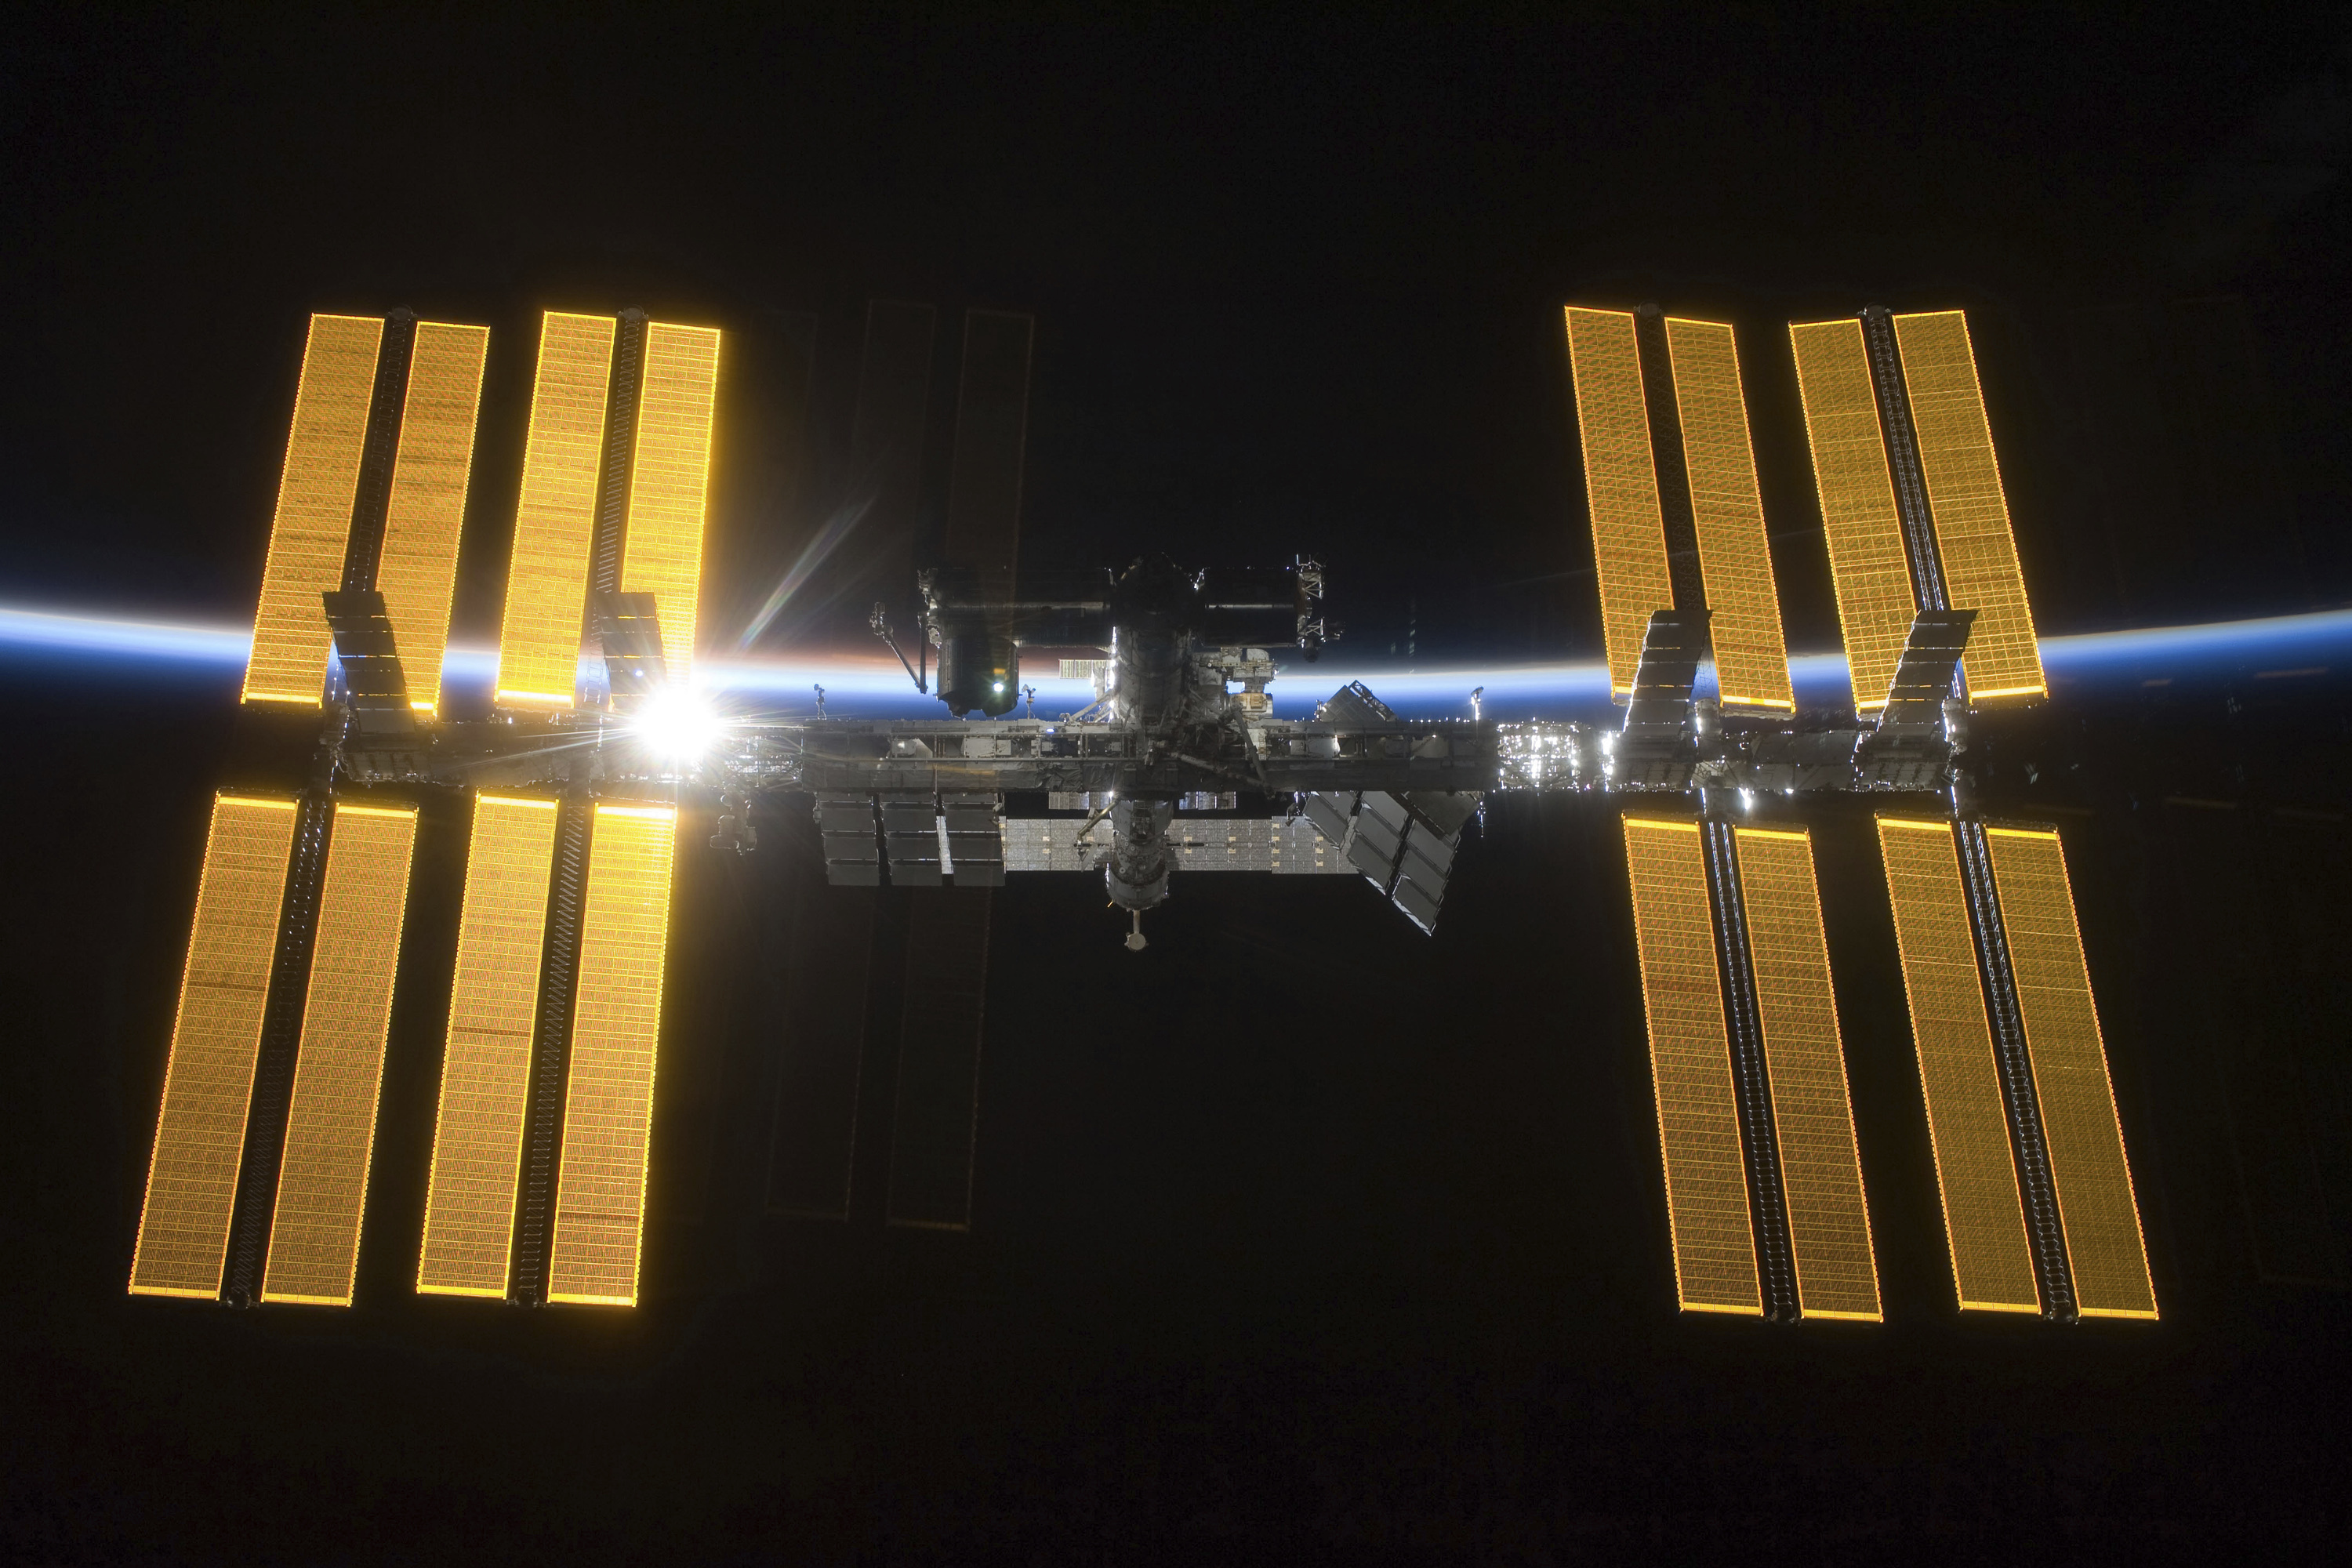 The International Space Station (ISS), as seen from the Space Shuttle Discovery during separation, will be open to private astronauts, with the first visit as early as next year